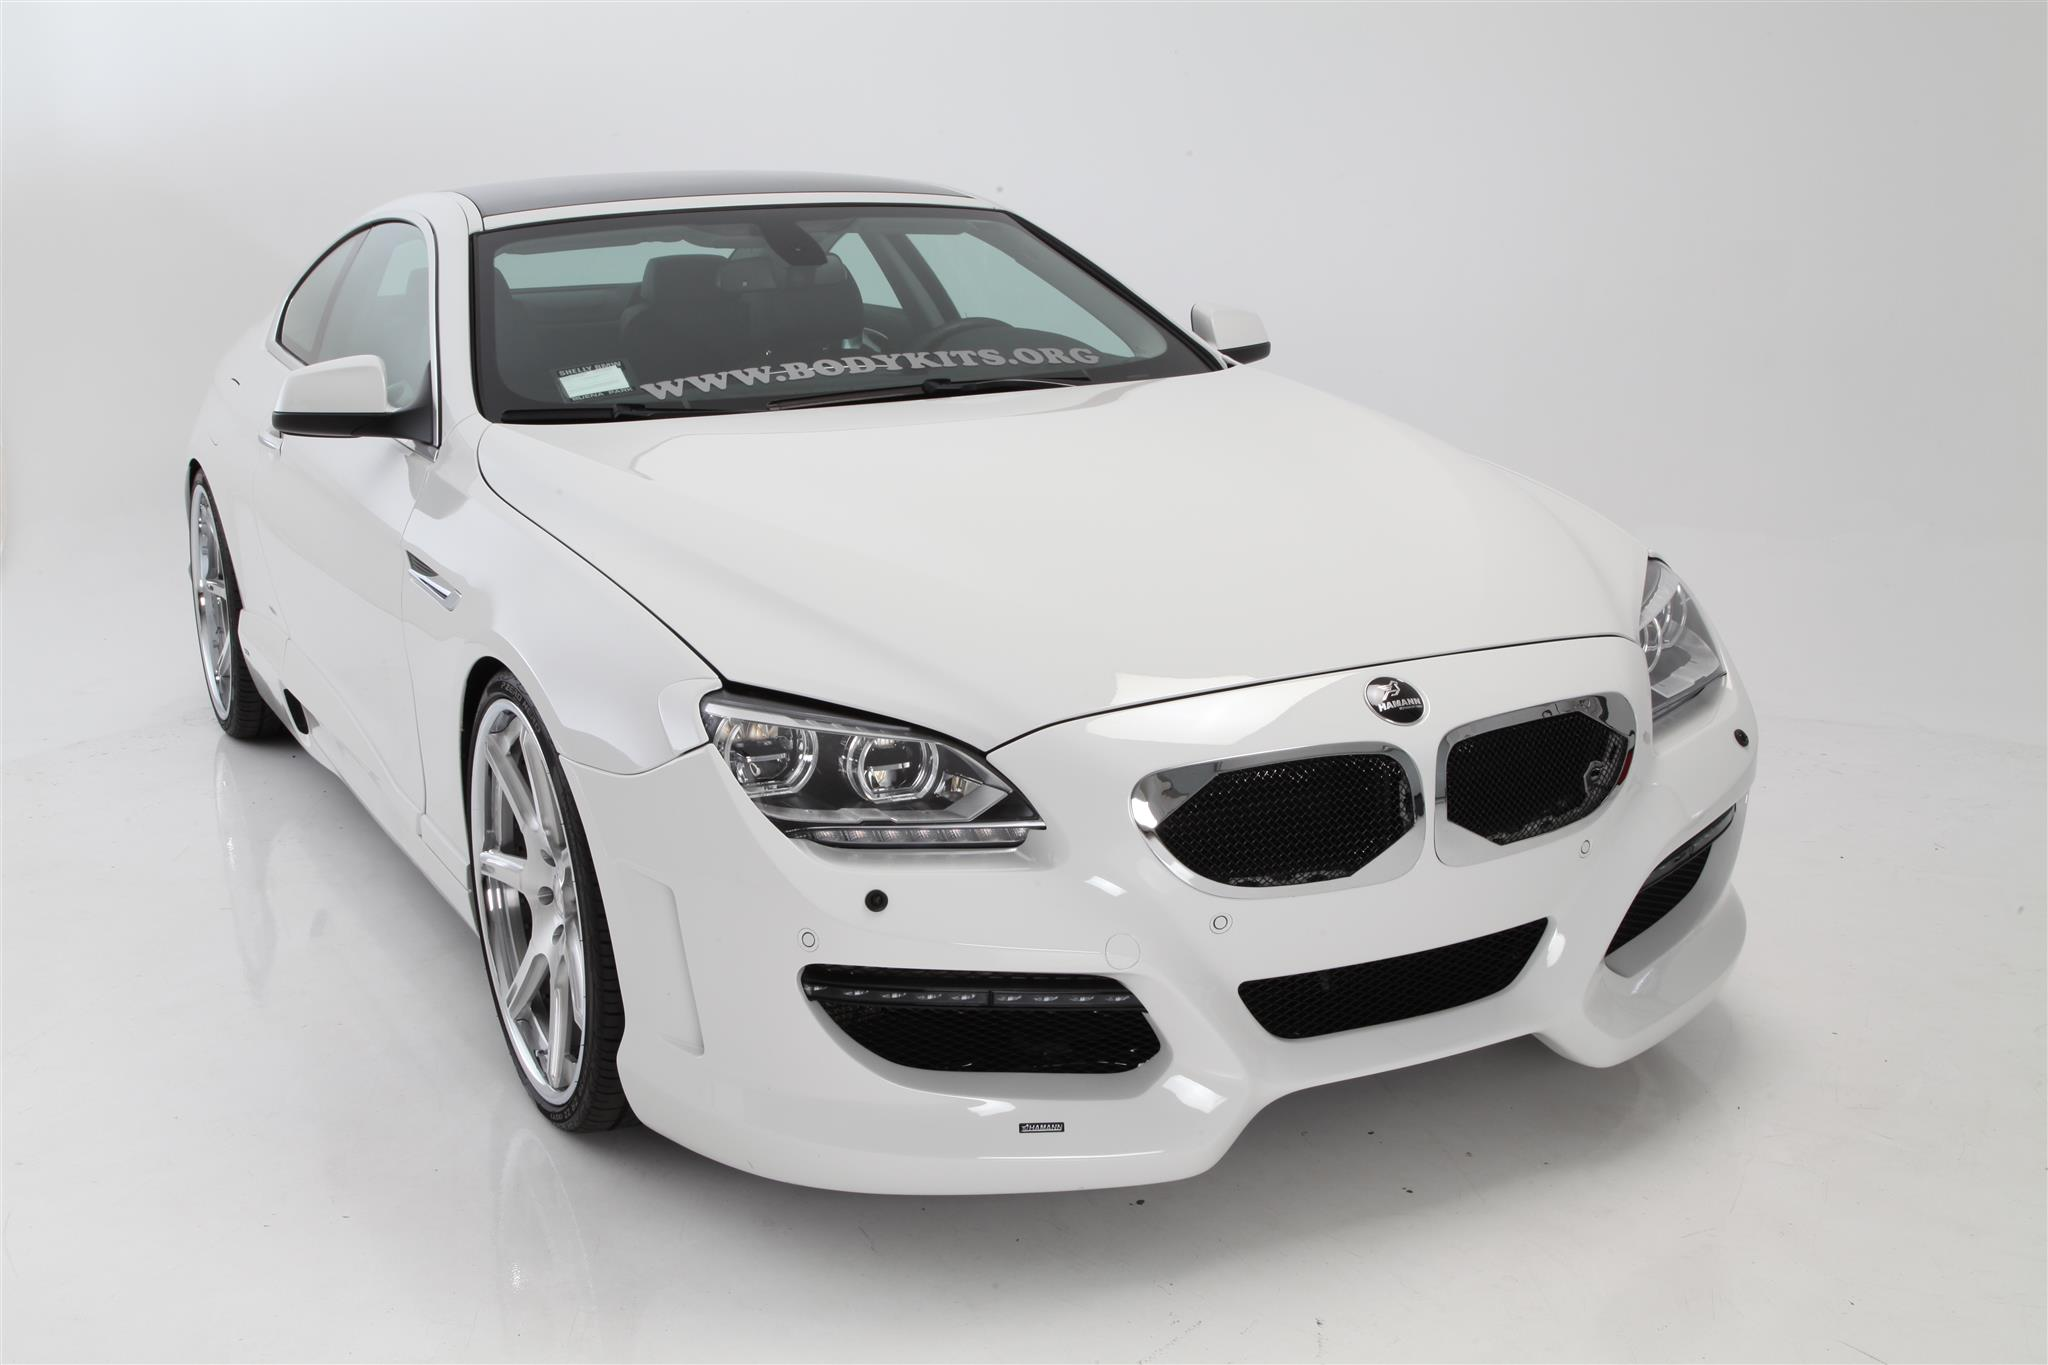 2012 BMW 640i -  HAMANN Aero Kit, Forgiato Grill: